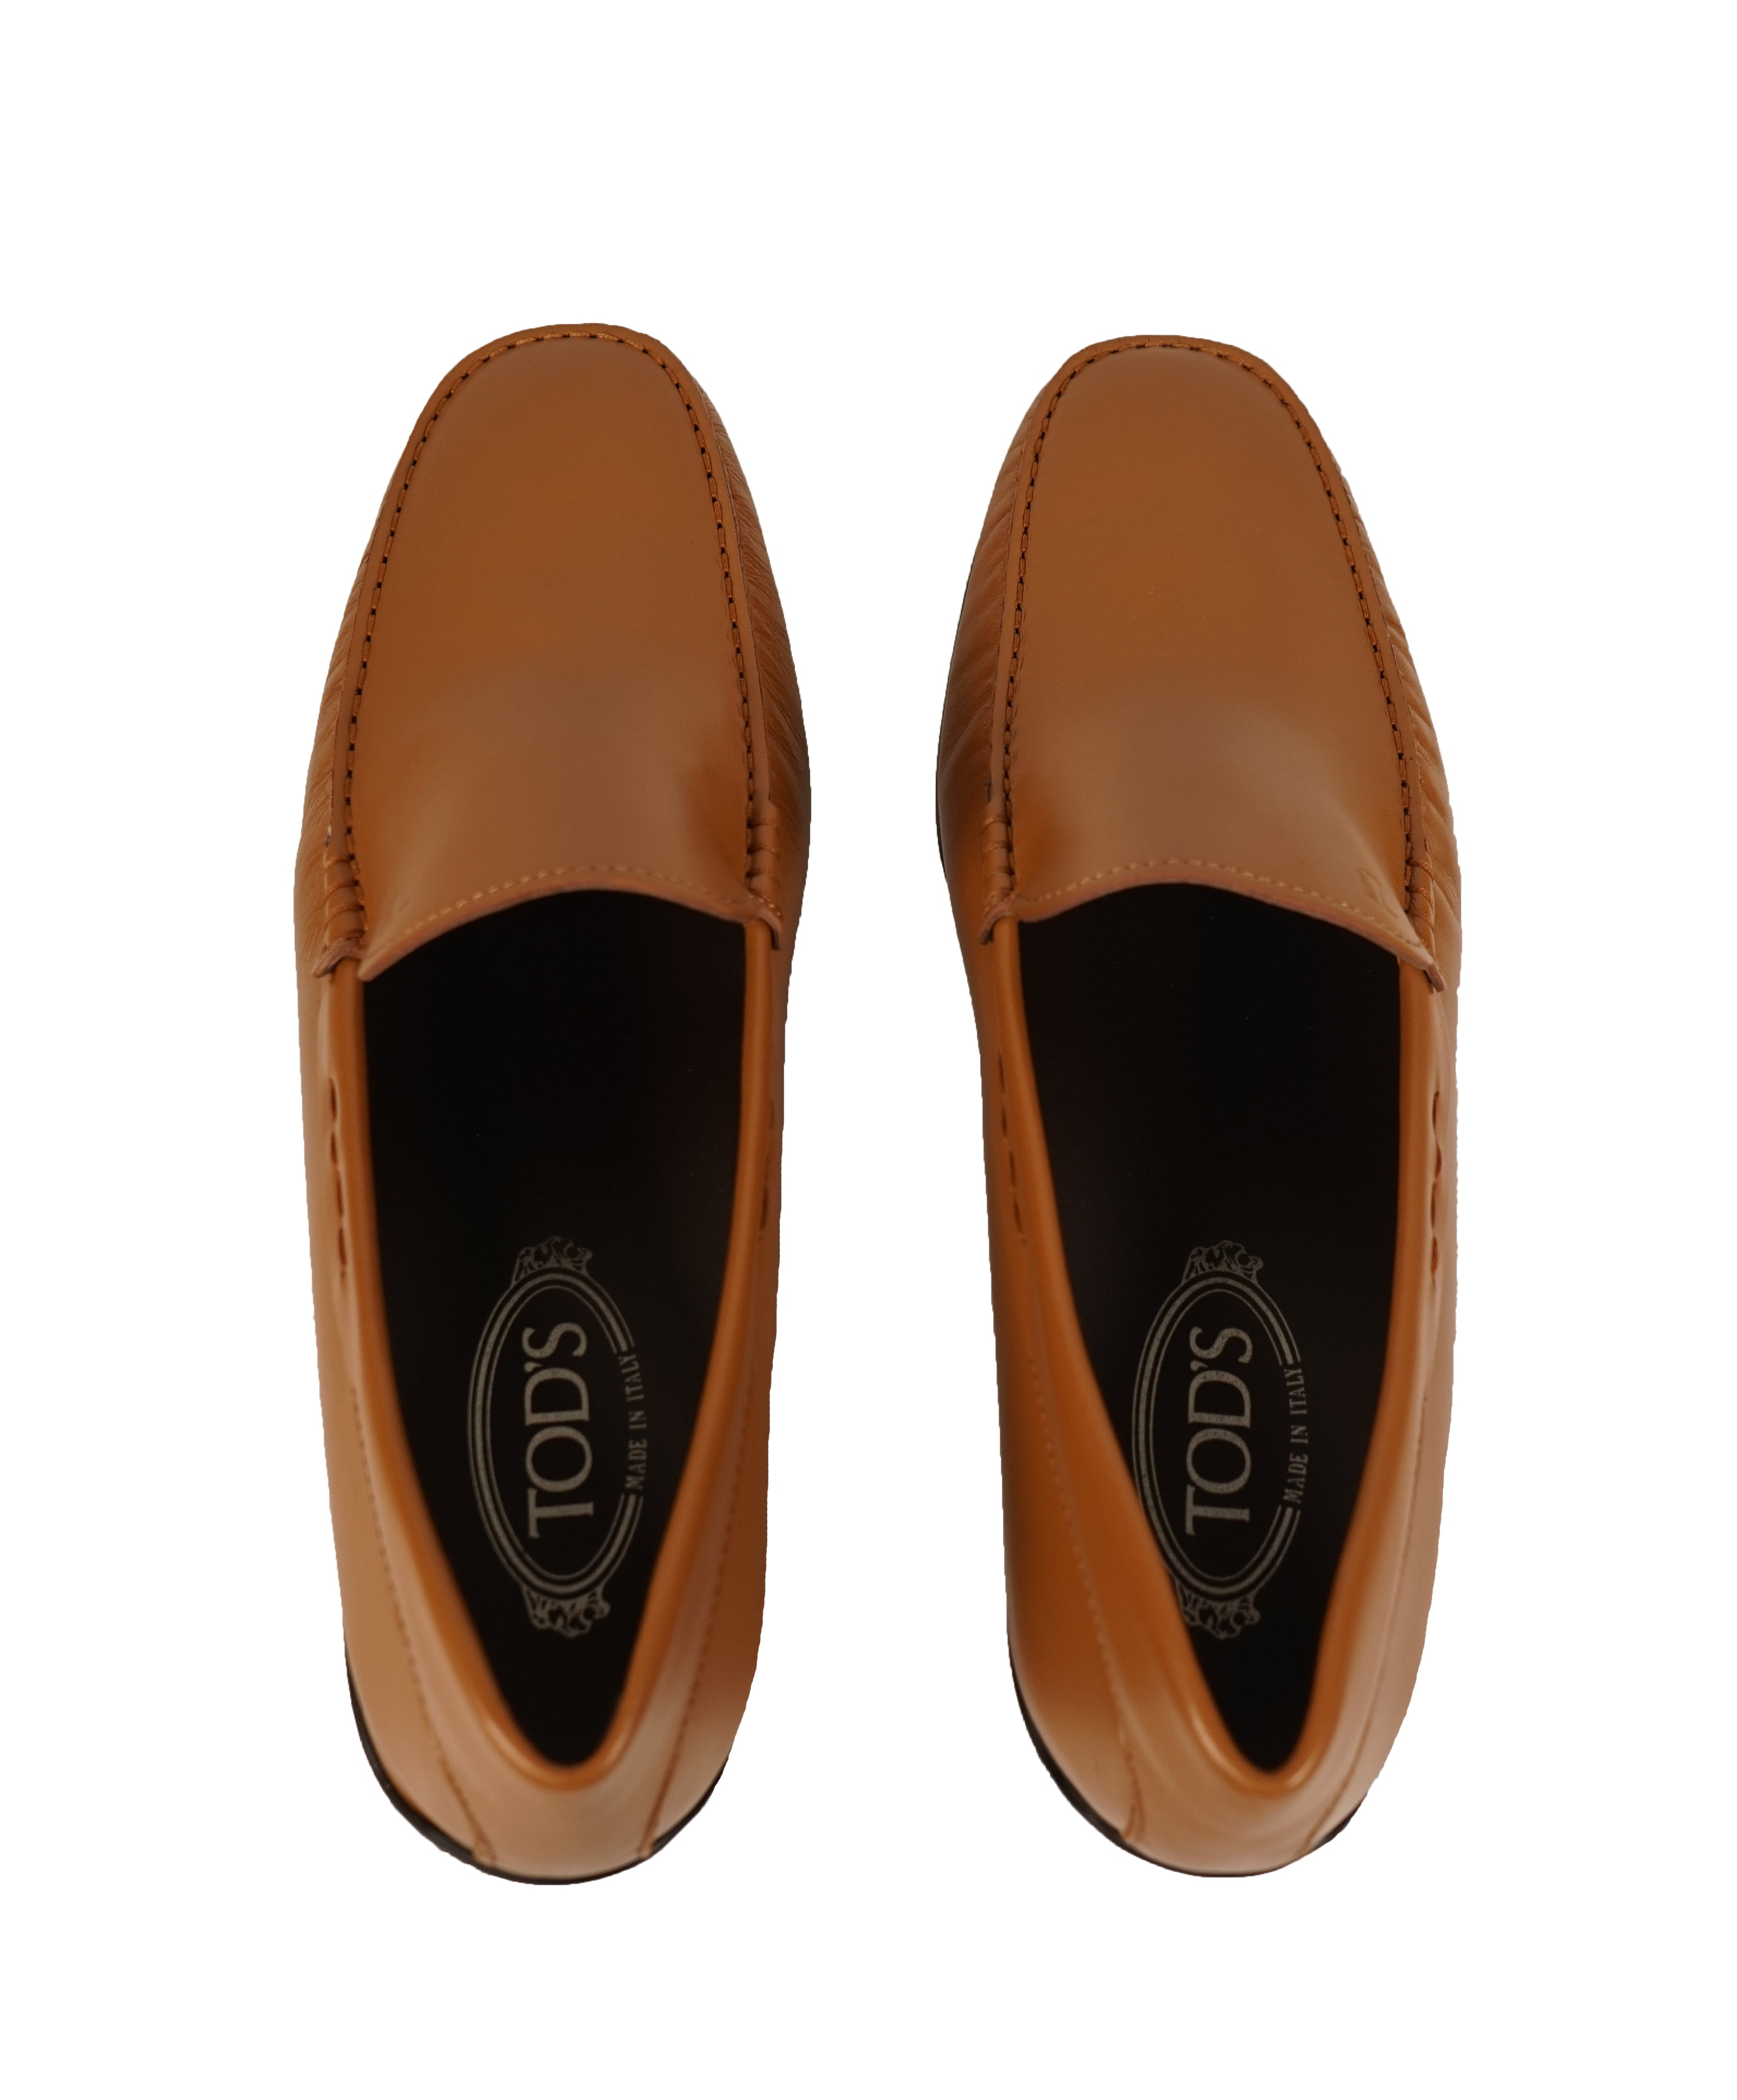 "TOD'S - Brown ""LOGO Gommini"" Vamp Engraved Italian Leather Loafers- 12.5"